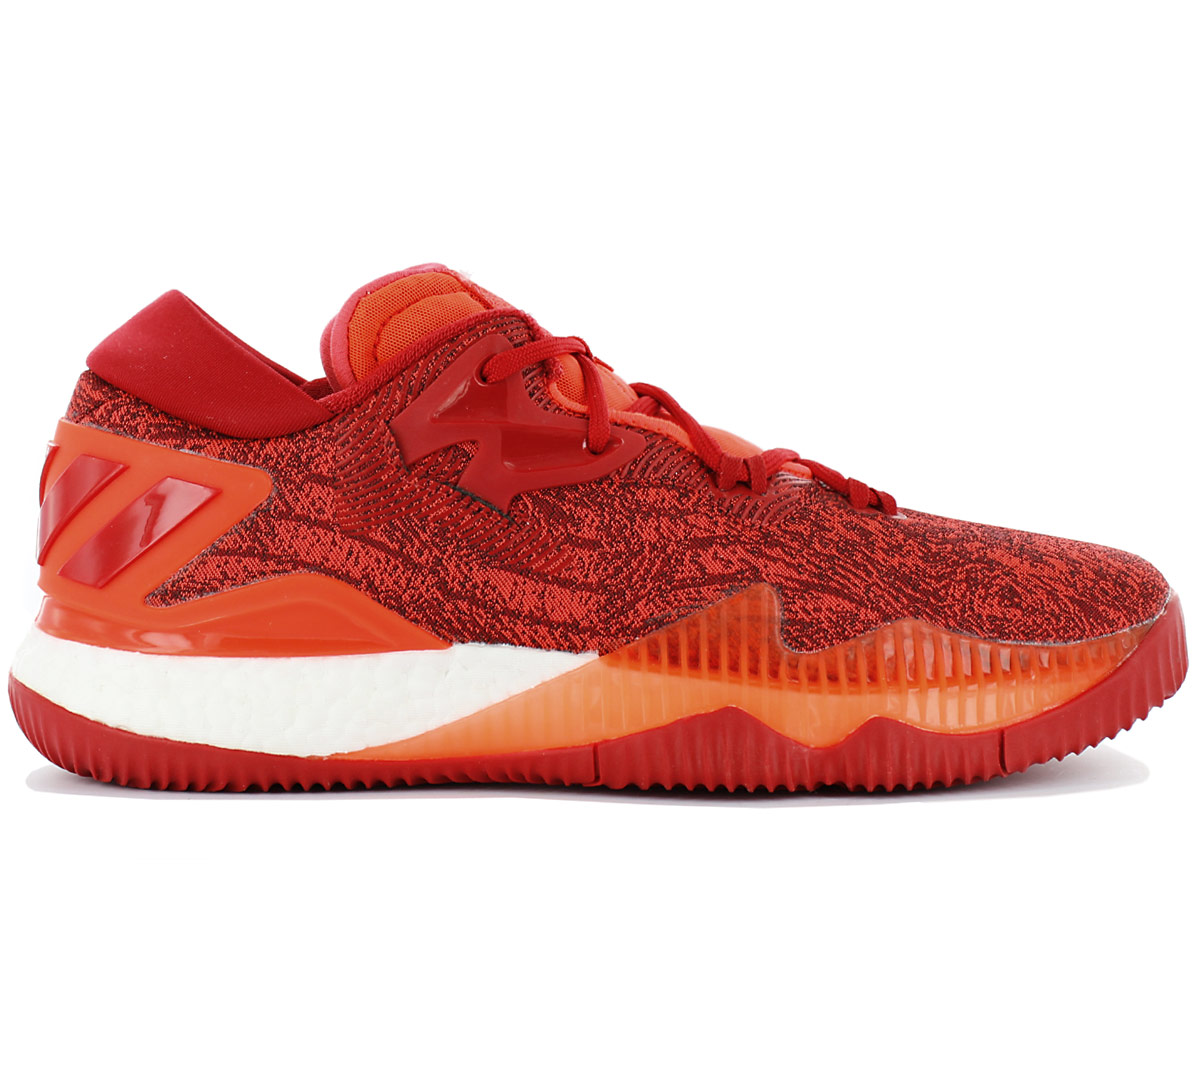 cheap for discount 0f228 0a73c Adidas Crazylight Boost Low Mens Basketballshoe Basketball S